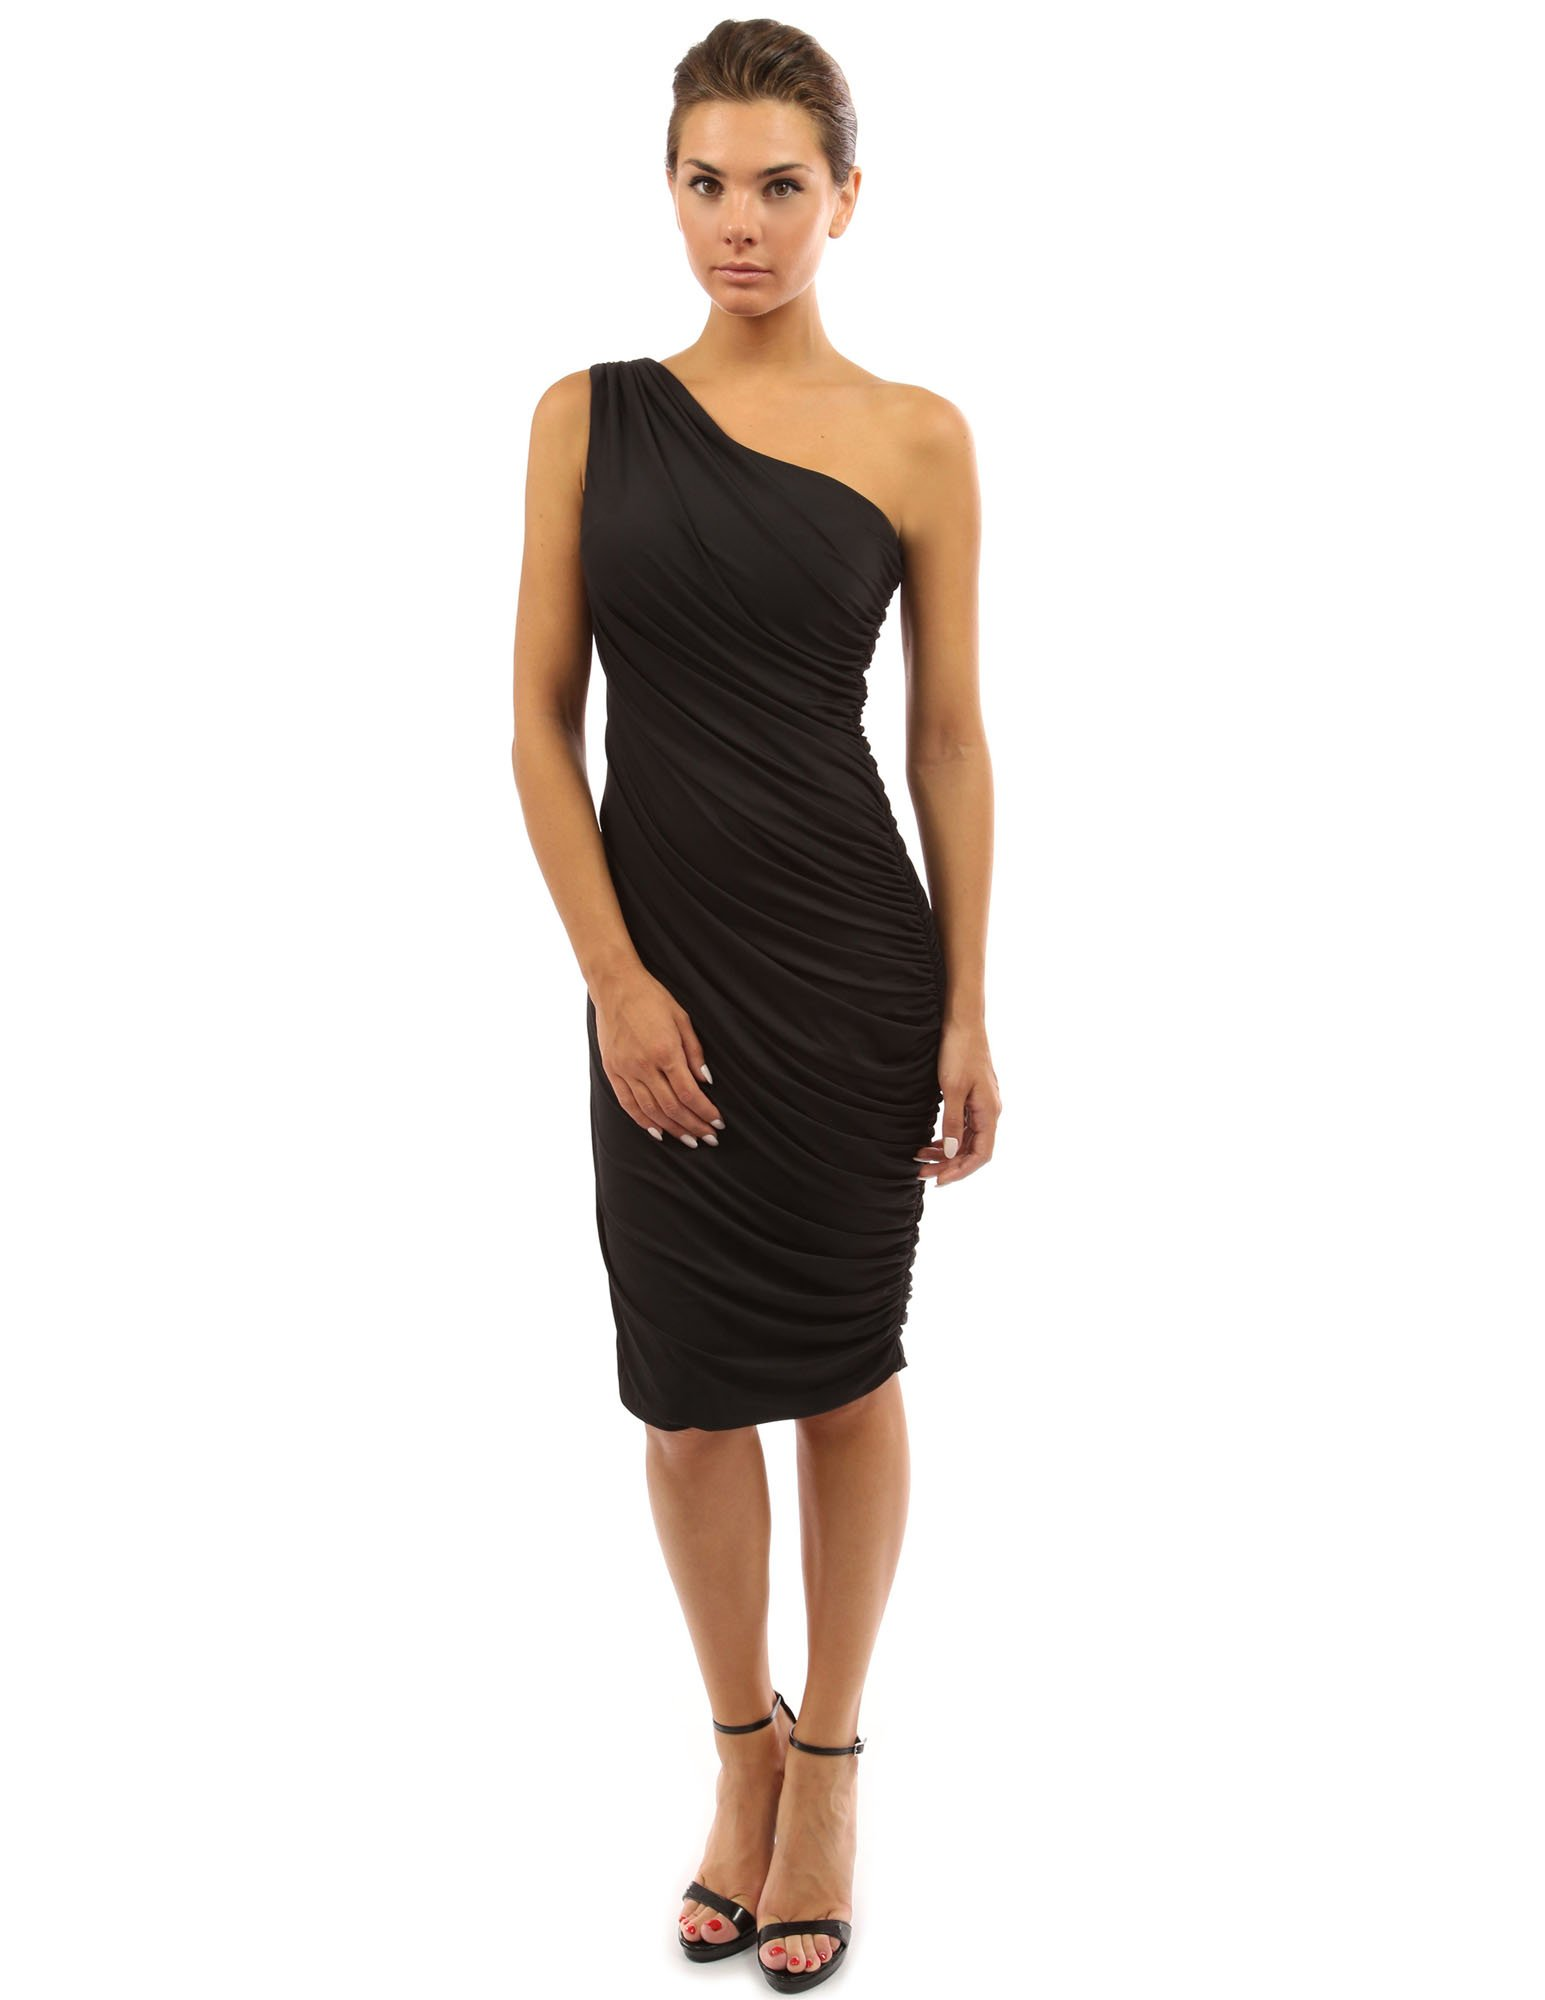 PattyBoutik Women's One Shoulder Cocktail Dress (Black S)